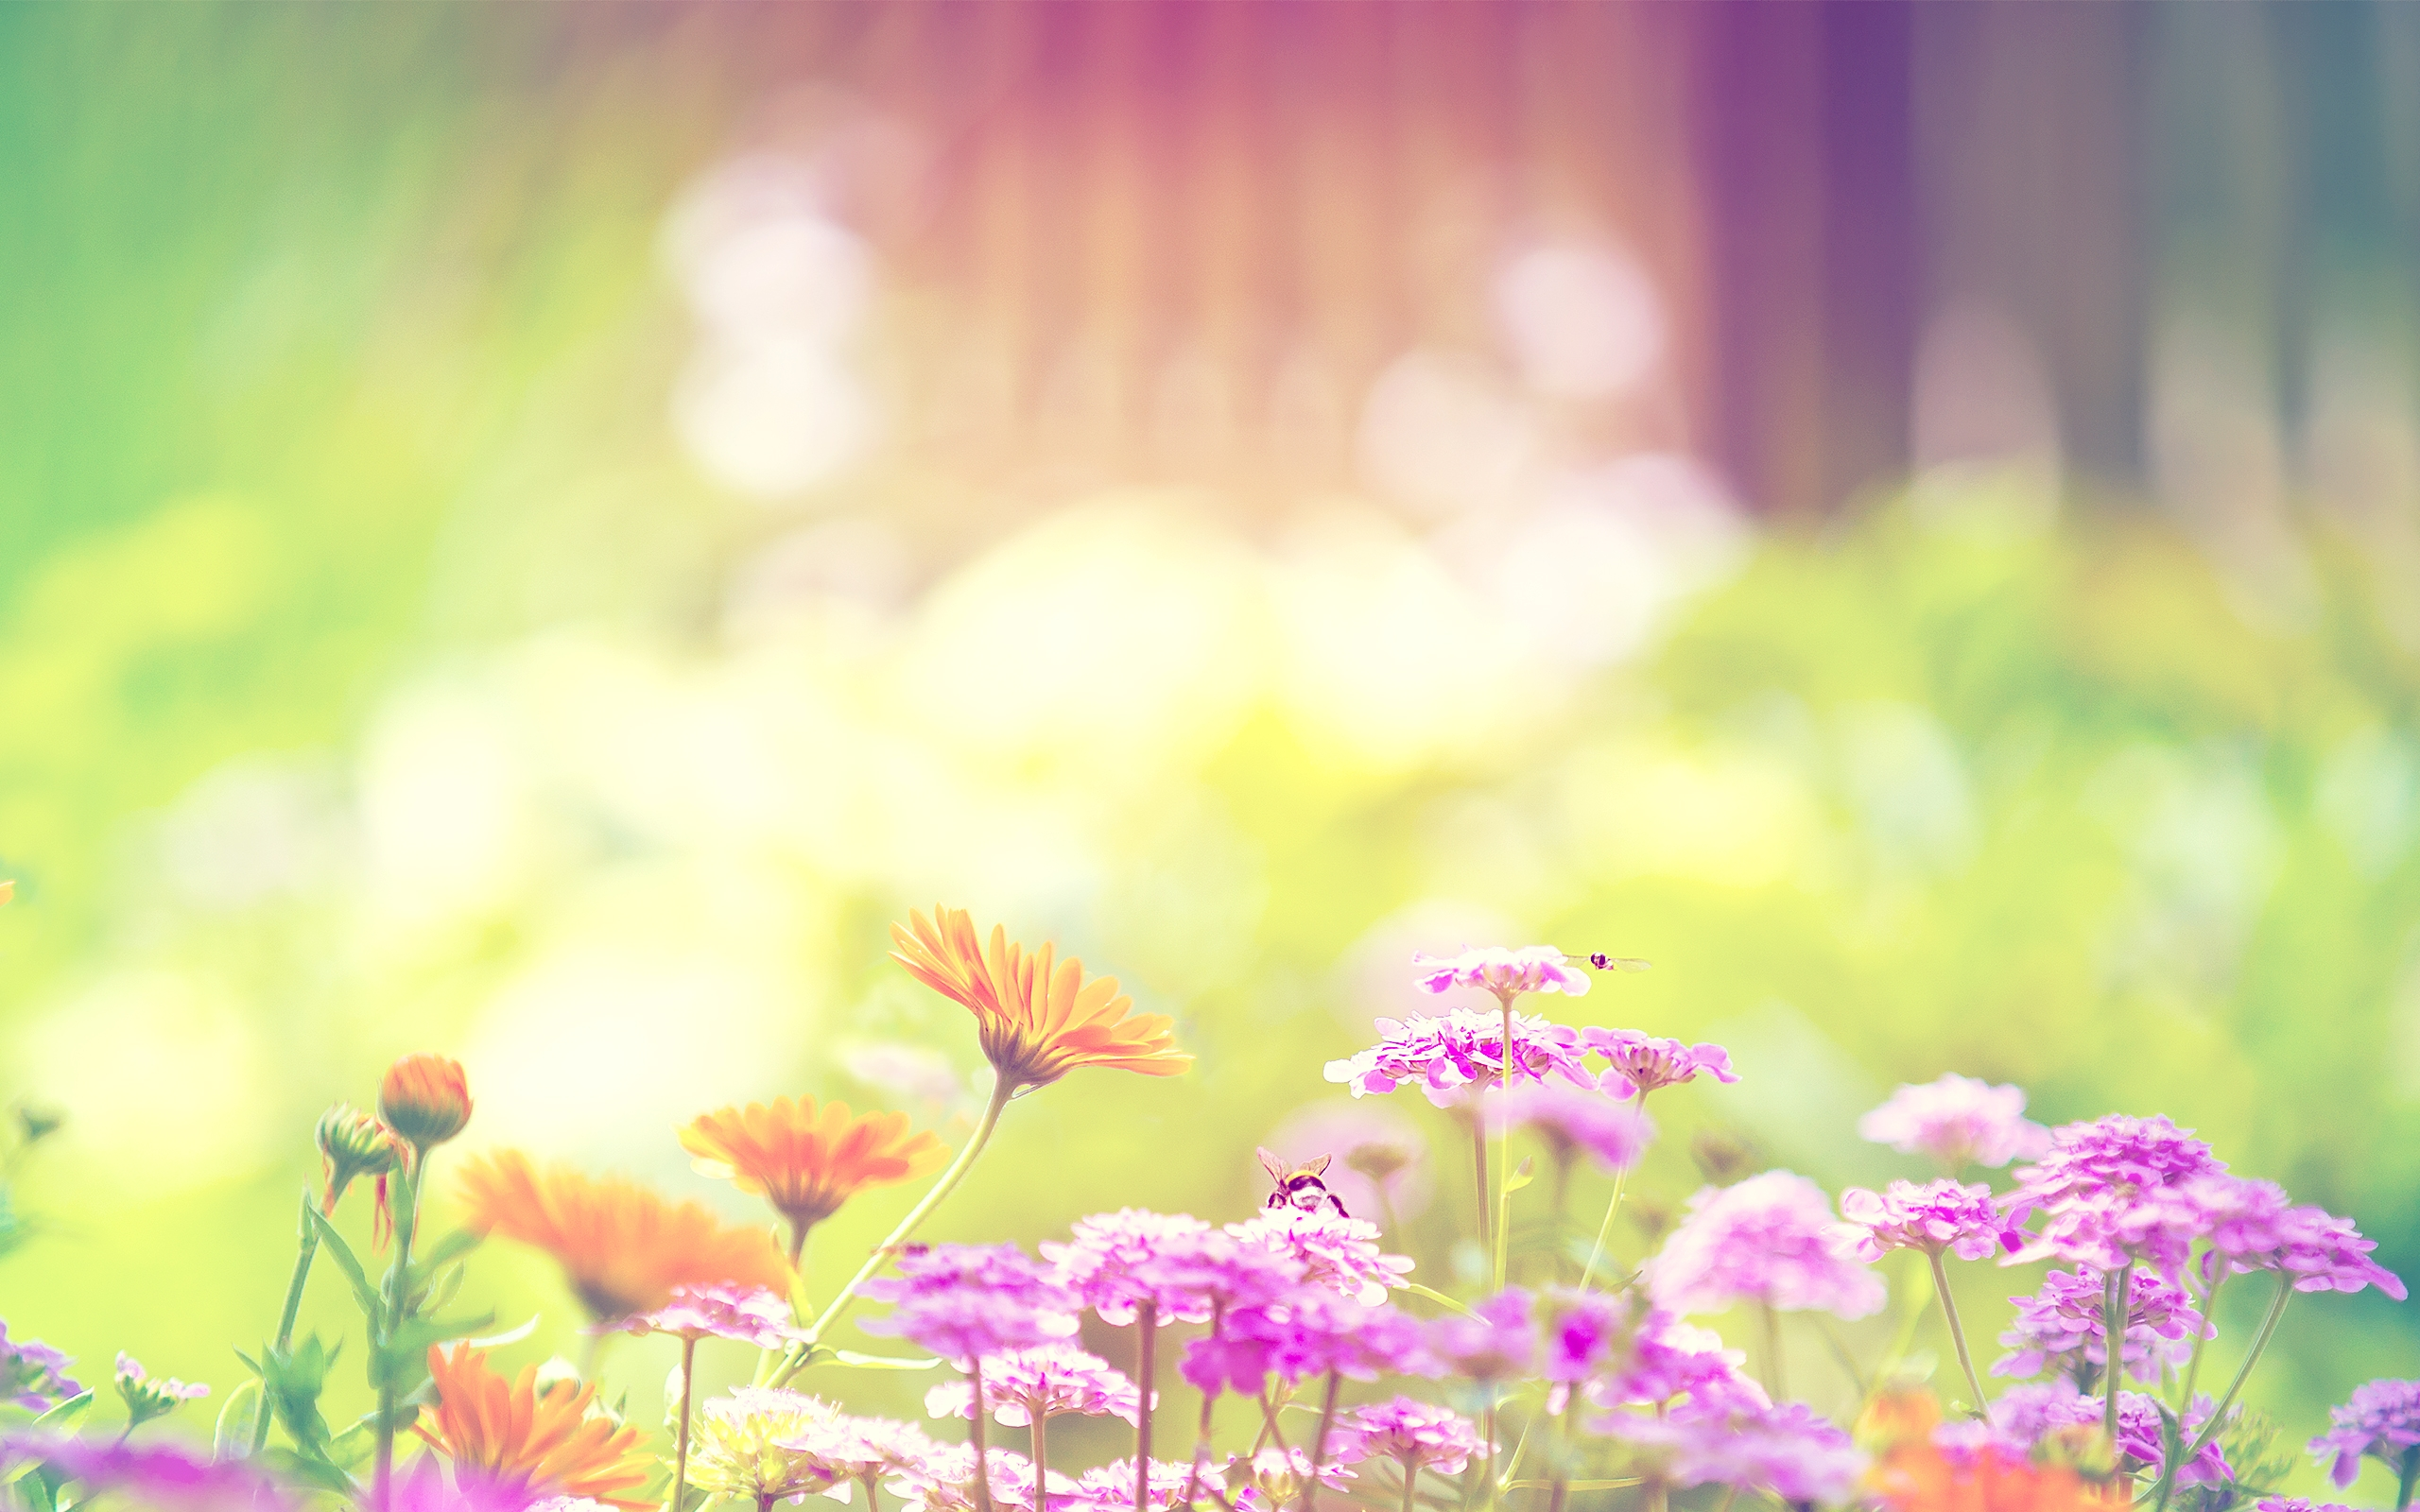 spring flowers background wallpaper free wallpapers for desktop iphone 2560x1600